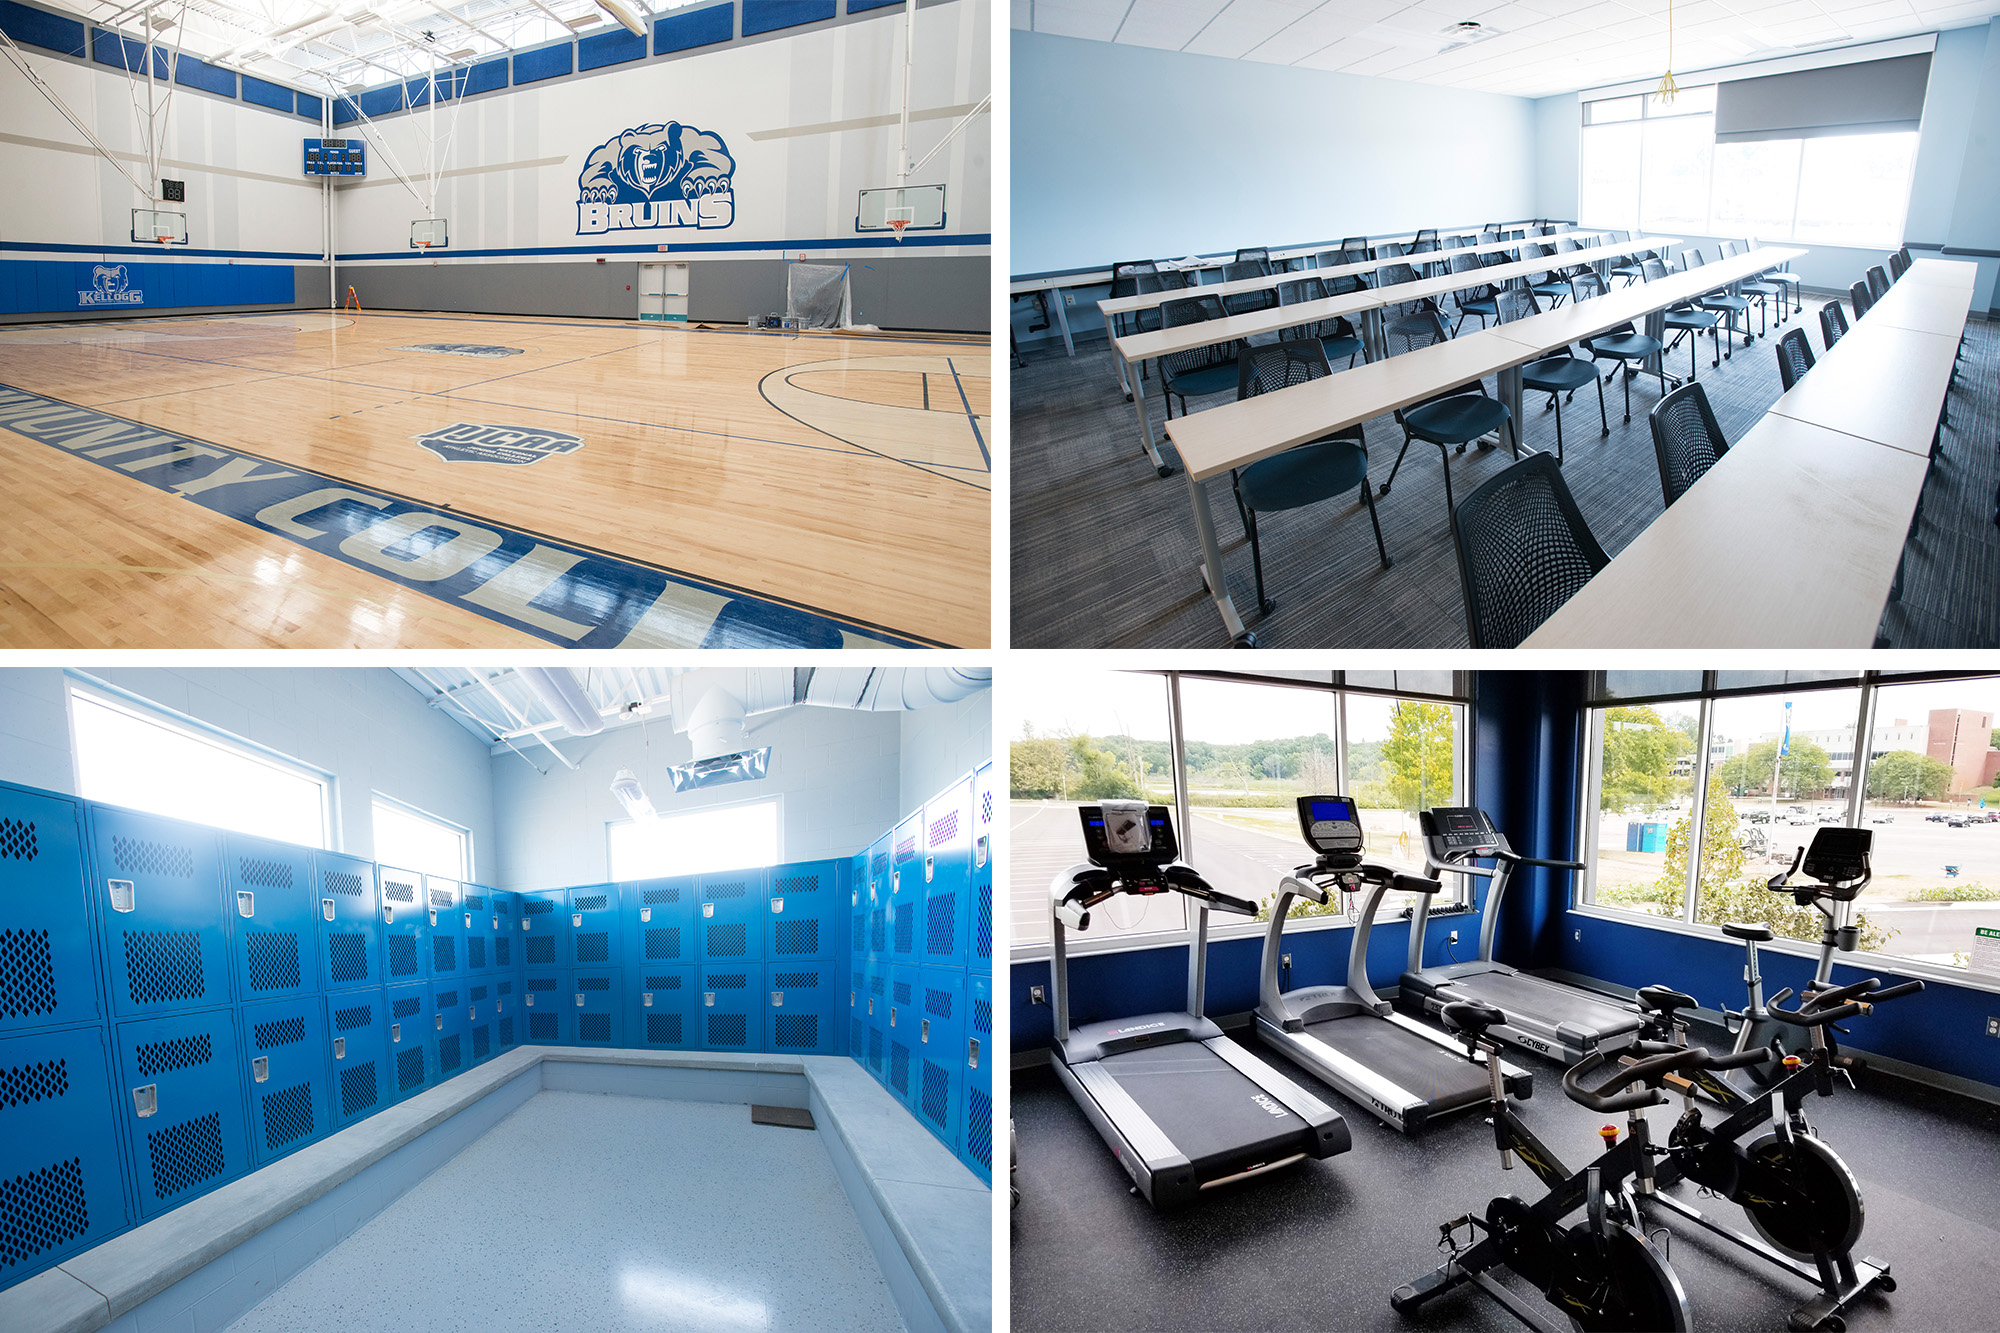 Views of the interior of the new Miller Building, including the gym, a classroom, locker room and fitness area.